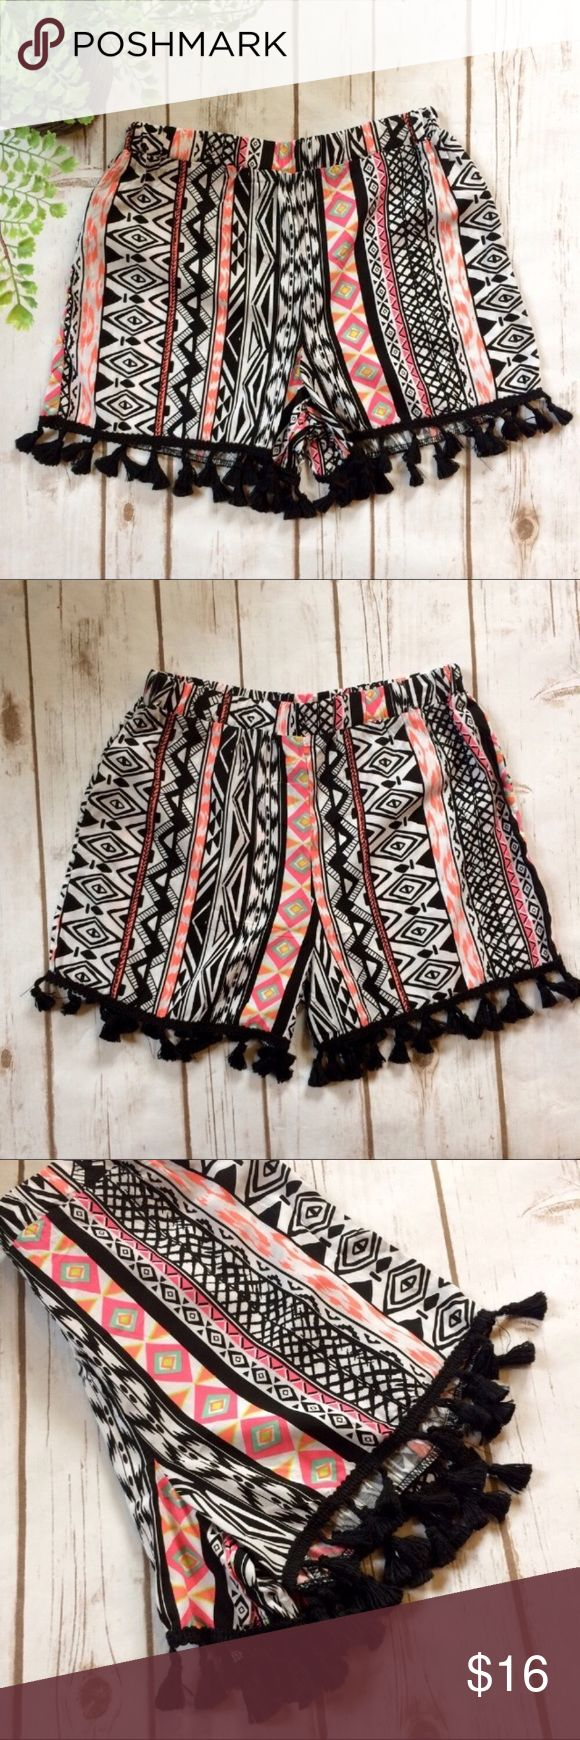 "🌼Festival Ready🌼 Aztec Fringe Shorts NWOT - fun, bright, Aztec Print shorts with black fringe. Features an elastic waist that stretches from 23""-30"". Inseam is 2.5"". 100% Rayon. Xhilaration Shorts"